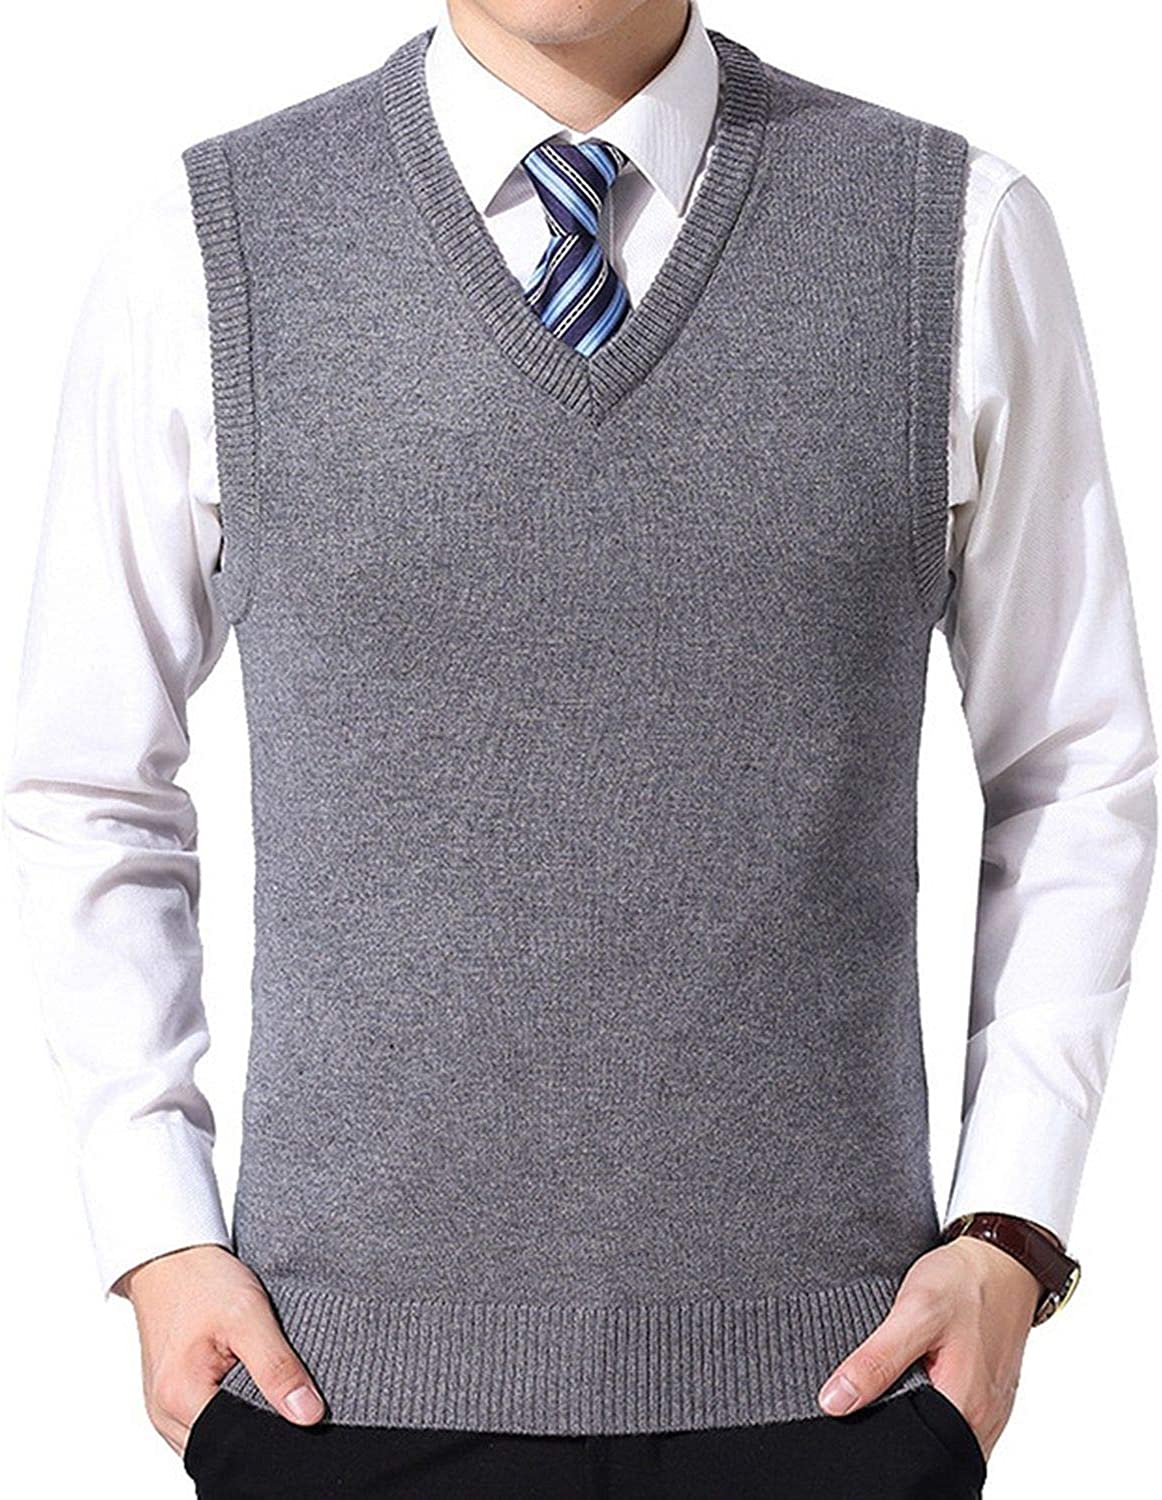 Nice Mens Solid Sweater Vest Men Wool Pullover V Neck Sleeveless Knitwear Vest Winter Casual Clothes Tops